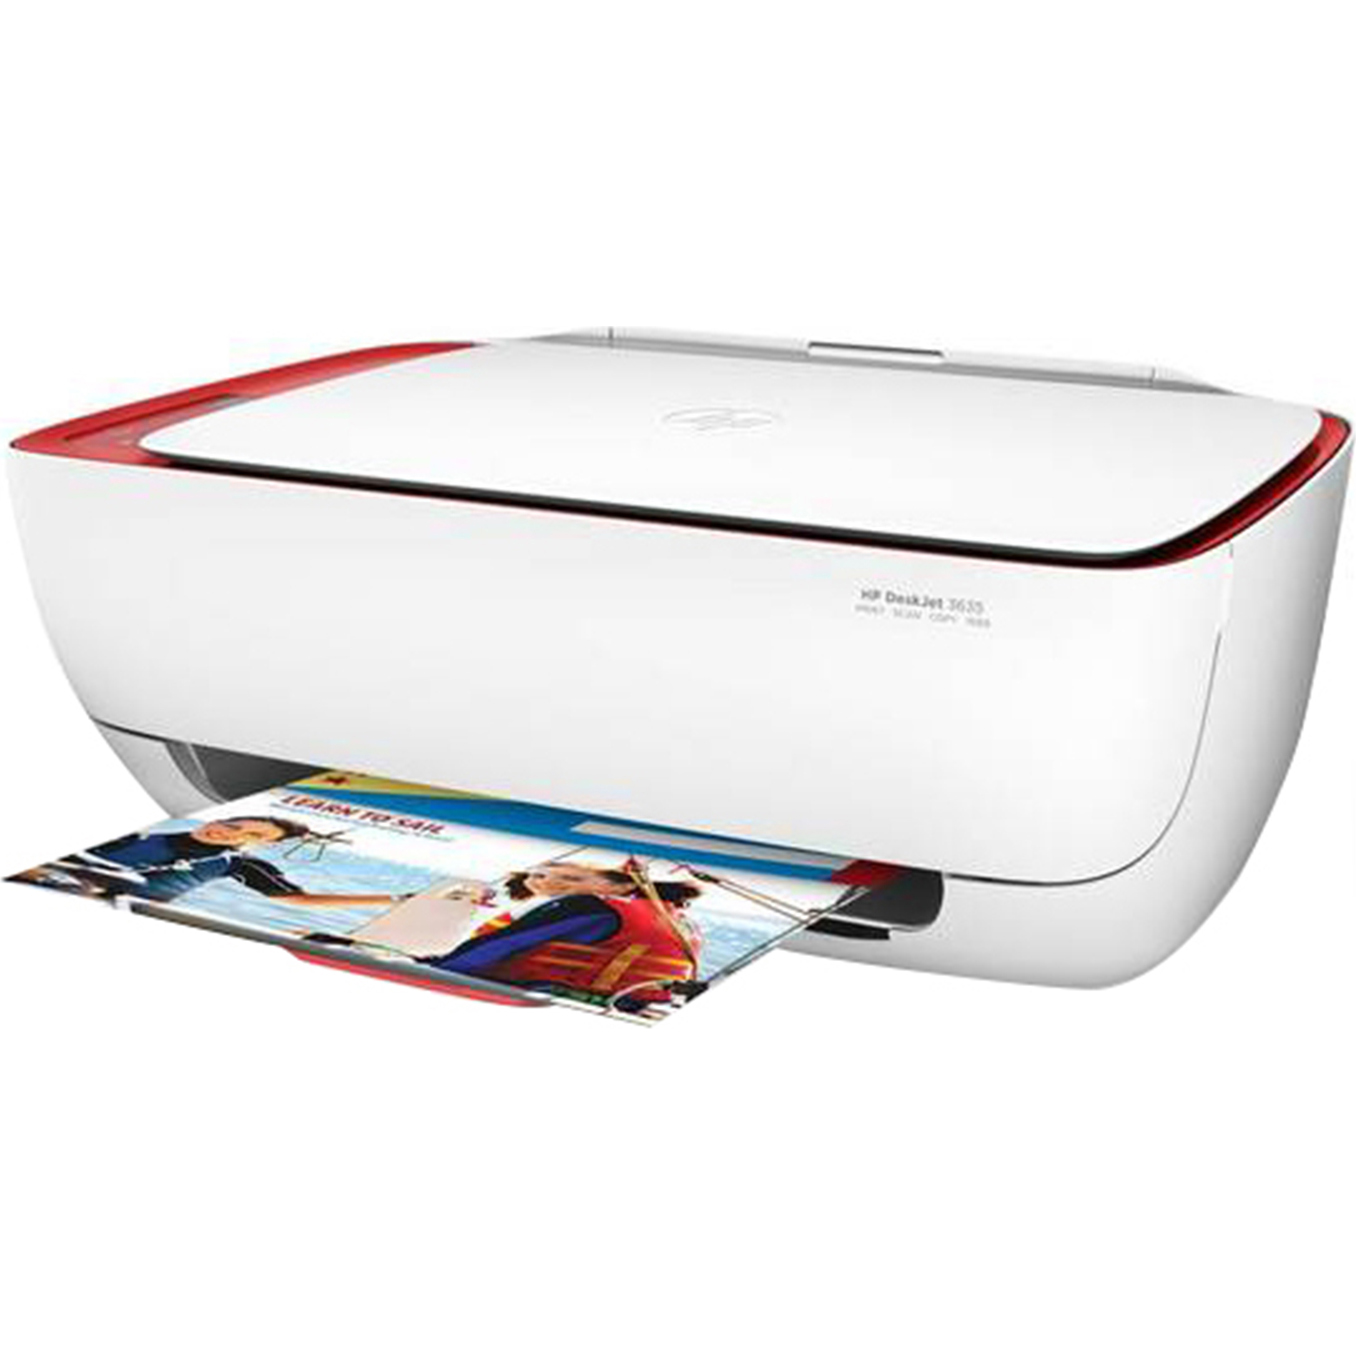 Refurbished HP DeskJet 3630 All-in-One Wireless Printer, Red